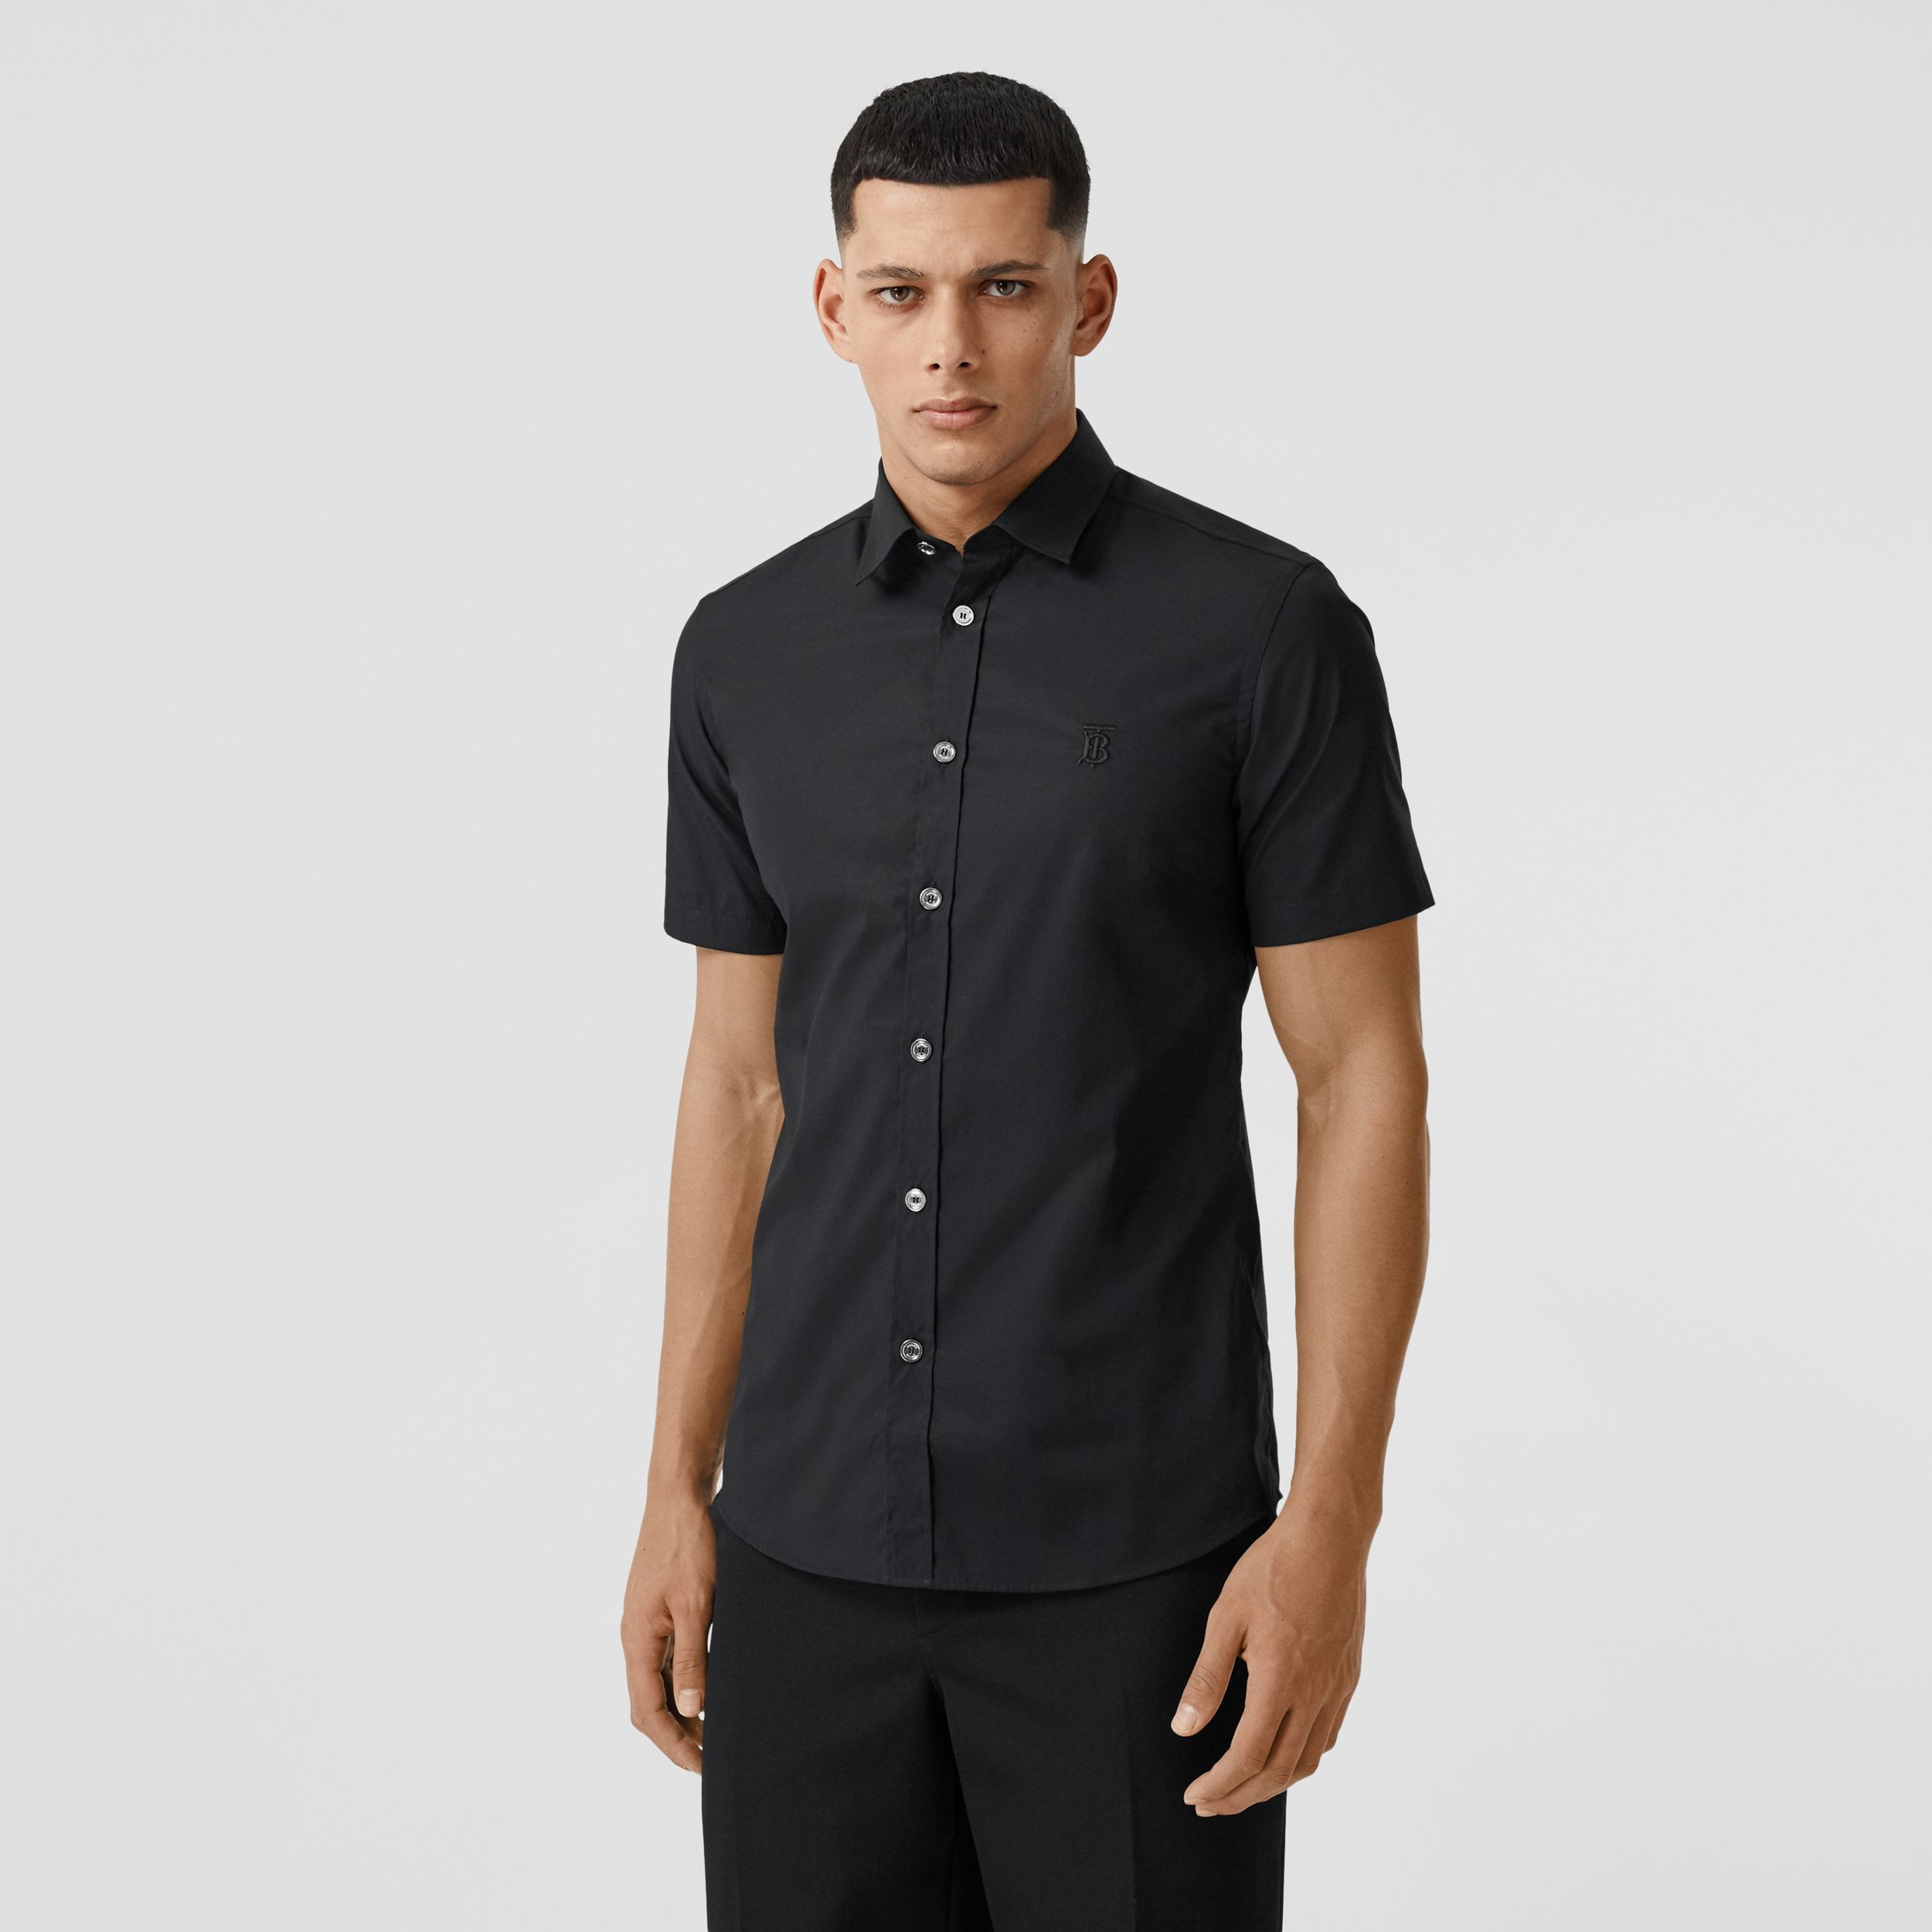 Short-sleeve Monogram Motif Stretch Cotton Shirt in Black - Men | Burberry - 1